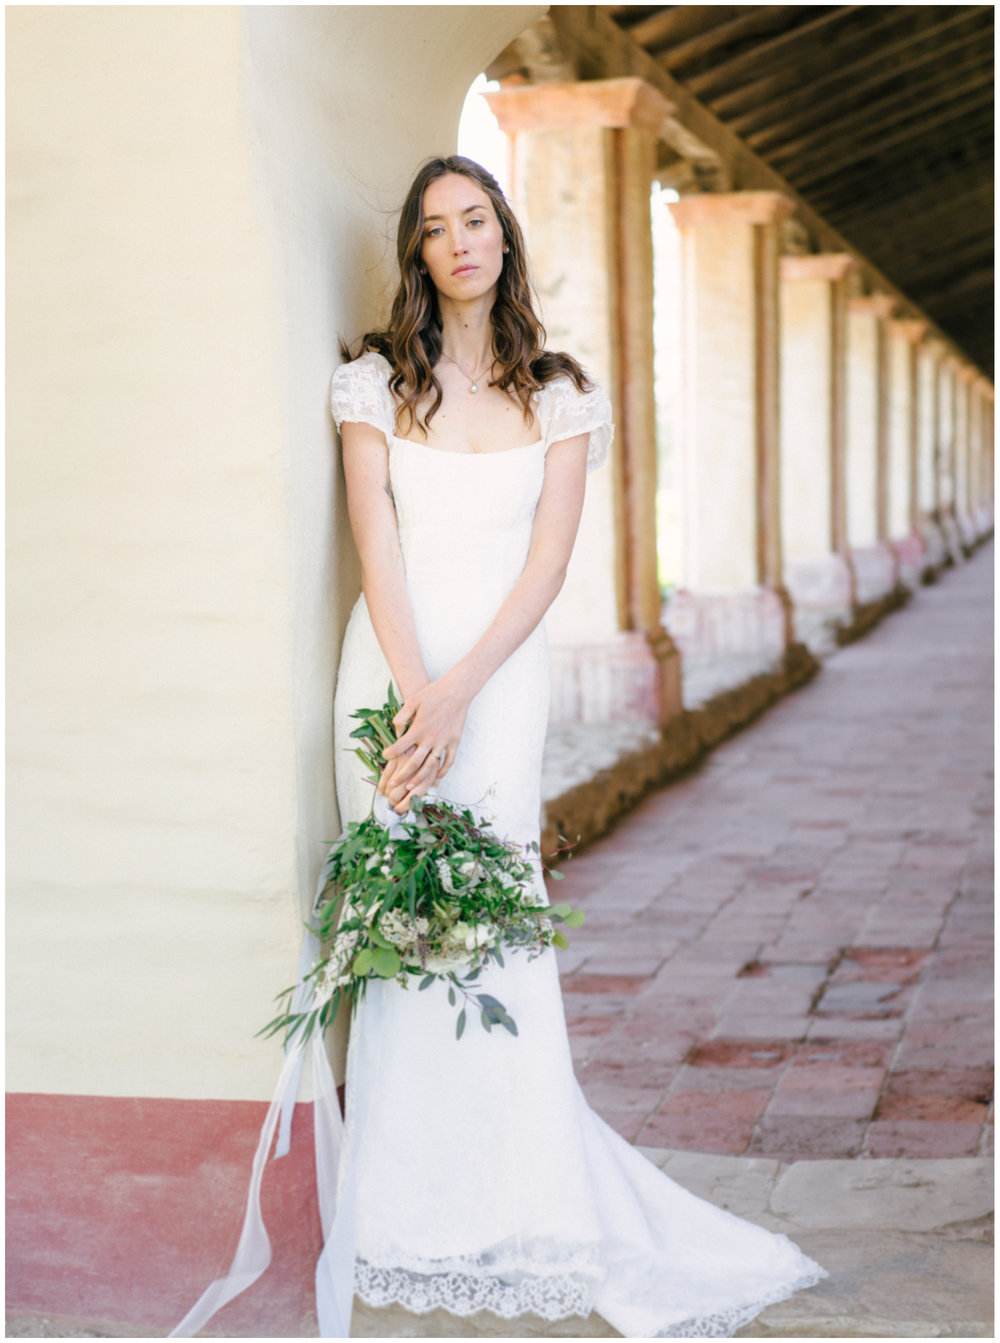 Santa_Barbara_Wedding_Photographer_Pinnel_Photography_La_Purisima_Mission-020.jpg